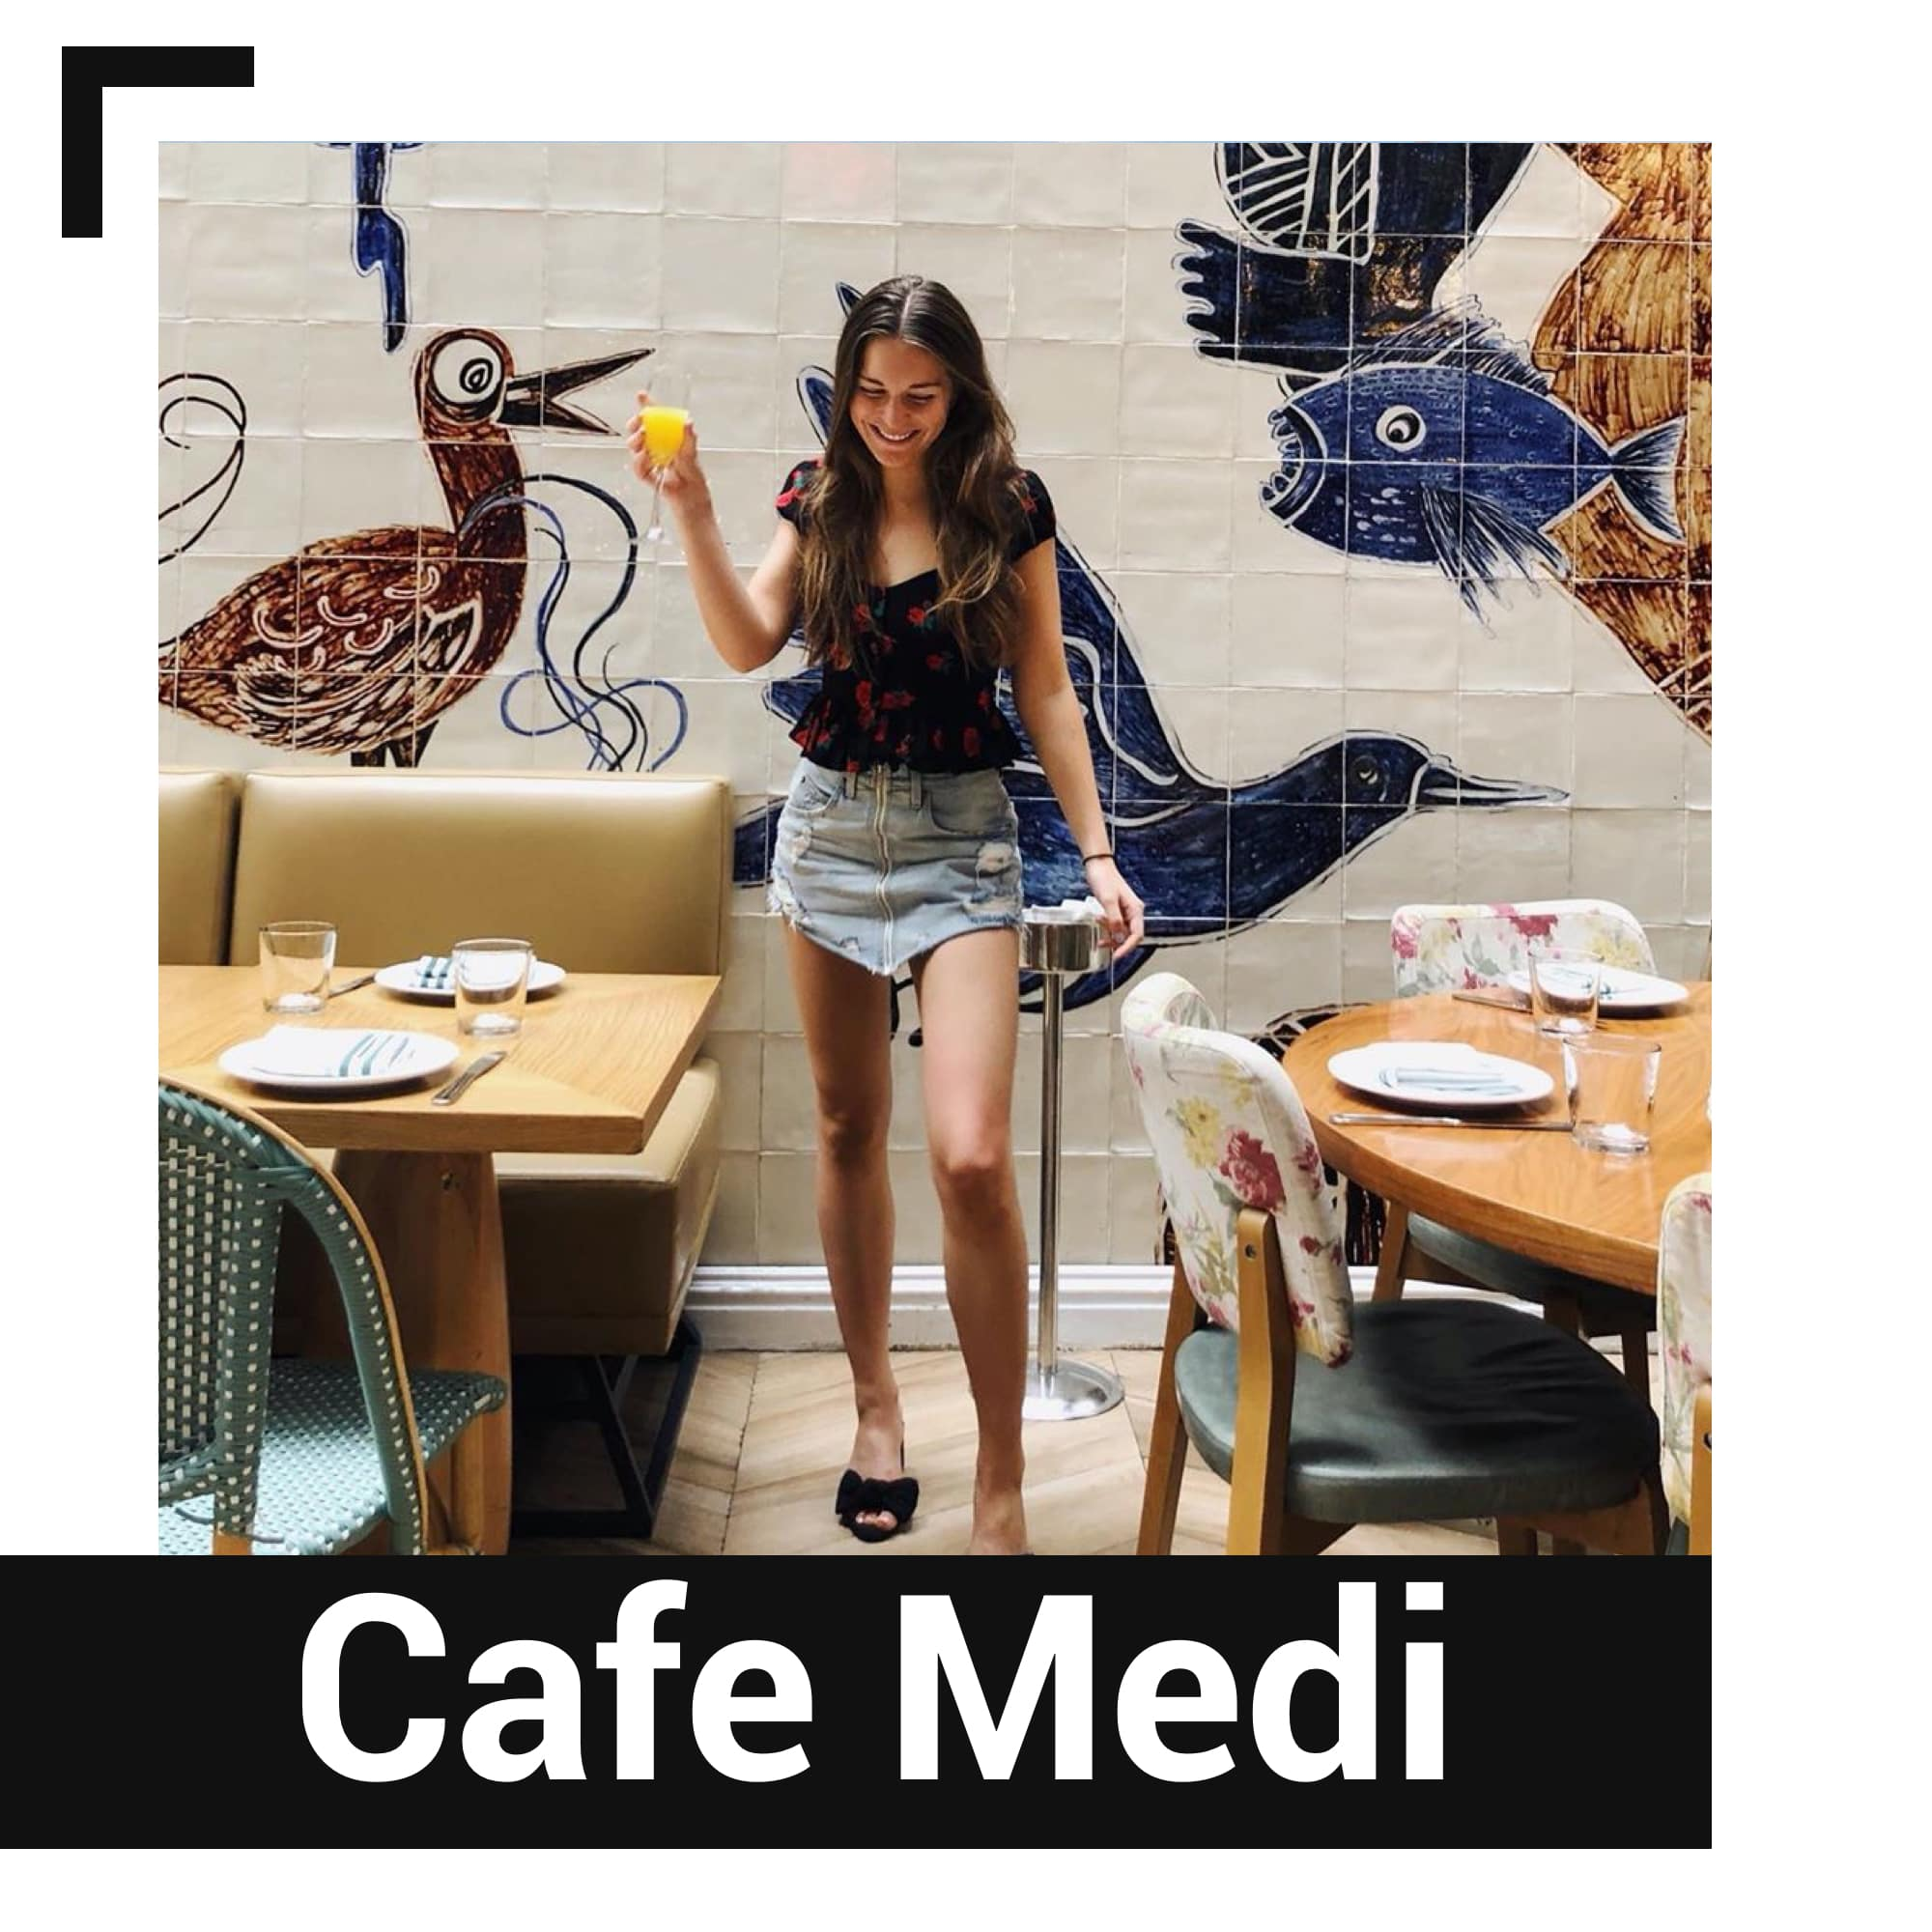 New York'taki Cafe Medi